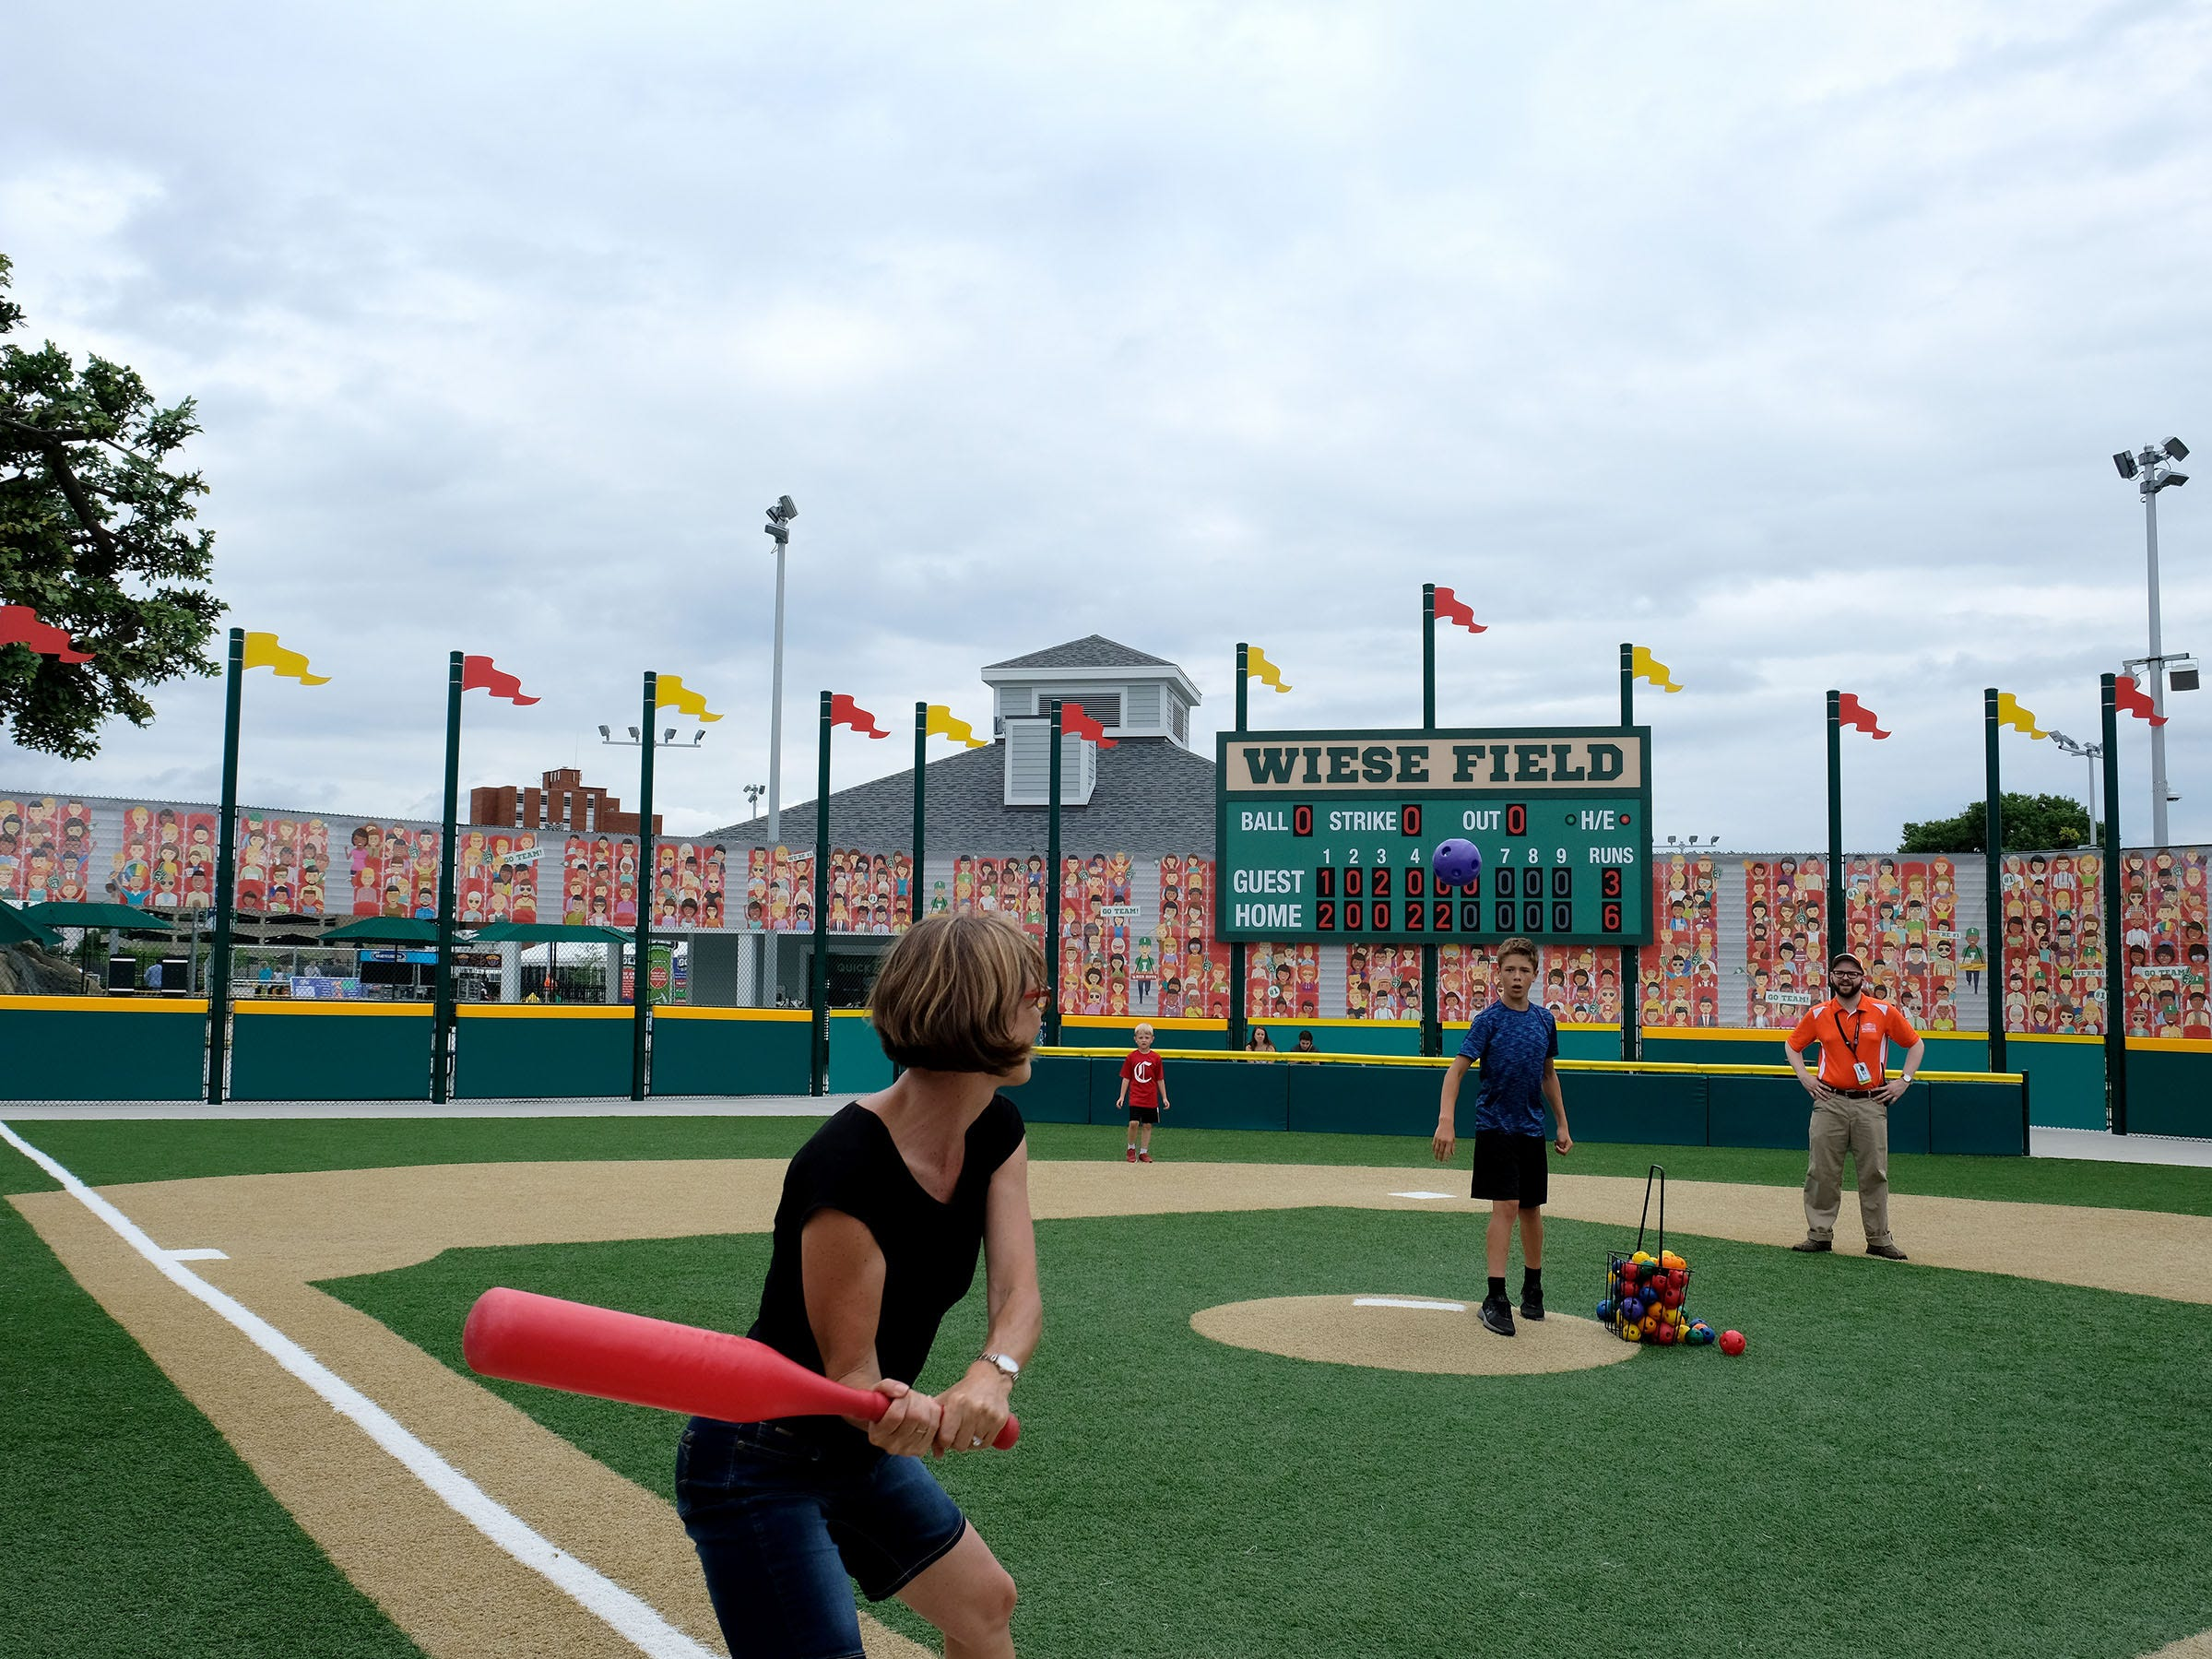 The spacious Sports Legends Experience at the Children's Museum of Indianapolis combines physical fitness with an appreciation of the history of sport. There are 15 exhibits covering such activities as golf, basketball, football, tennis, hockey and racing. A top attraction is Wiese Field, where you can swing for the fences.